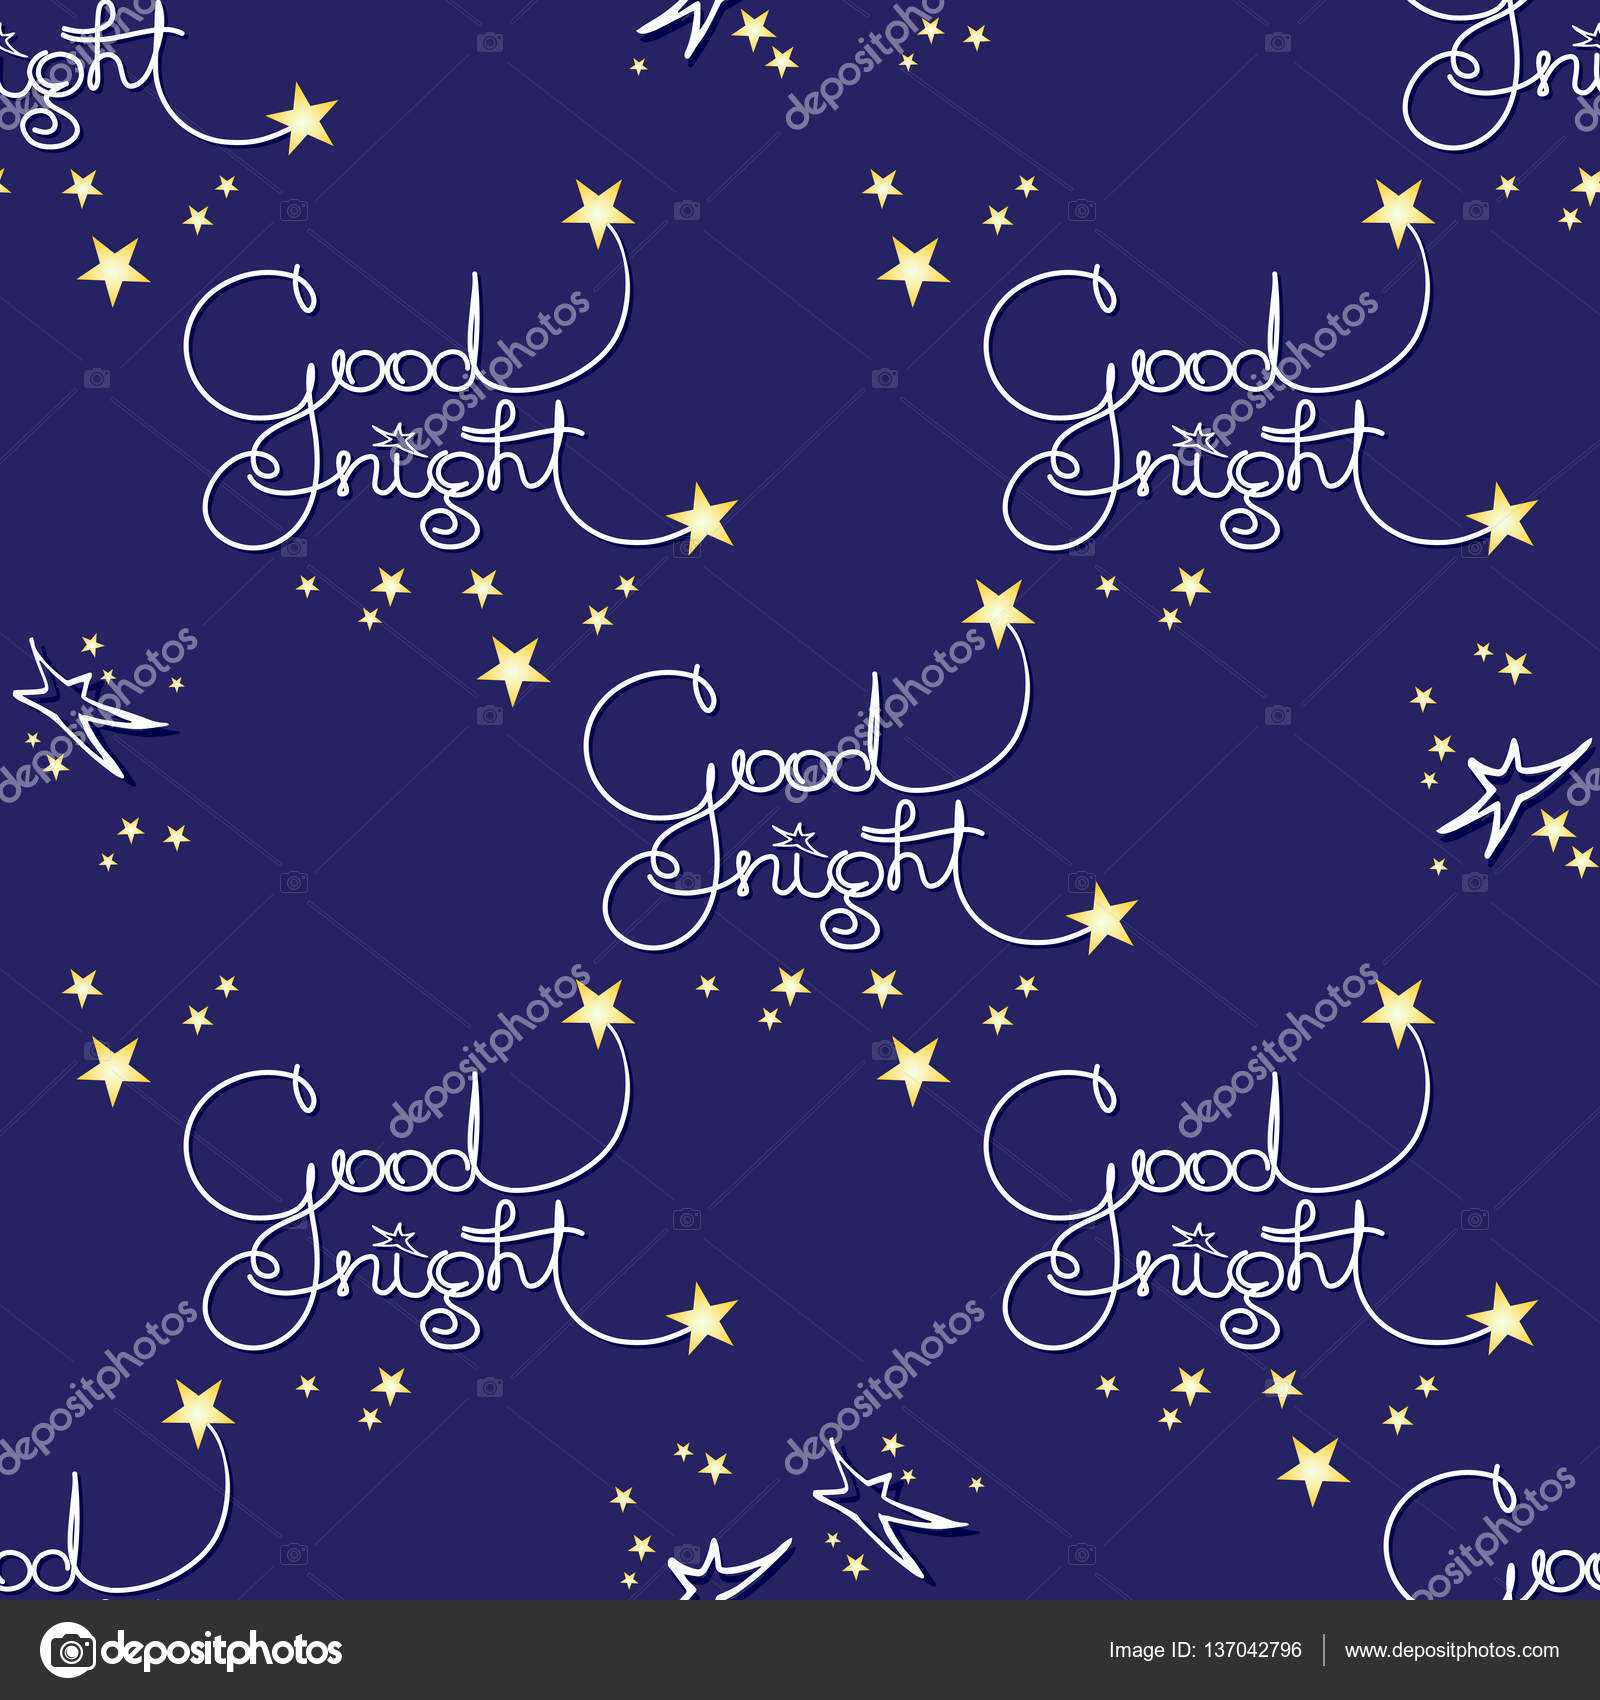 Good Night Vector Seamless Pattern Of Handwritten Words And Stars